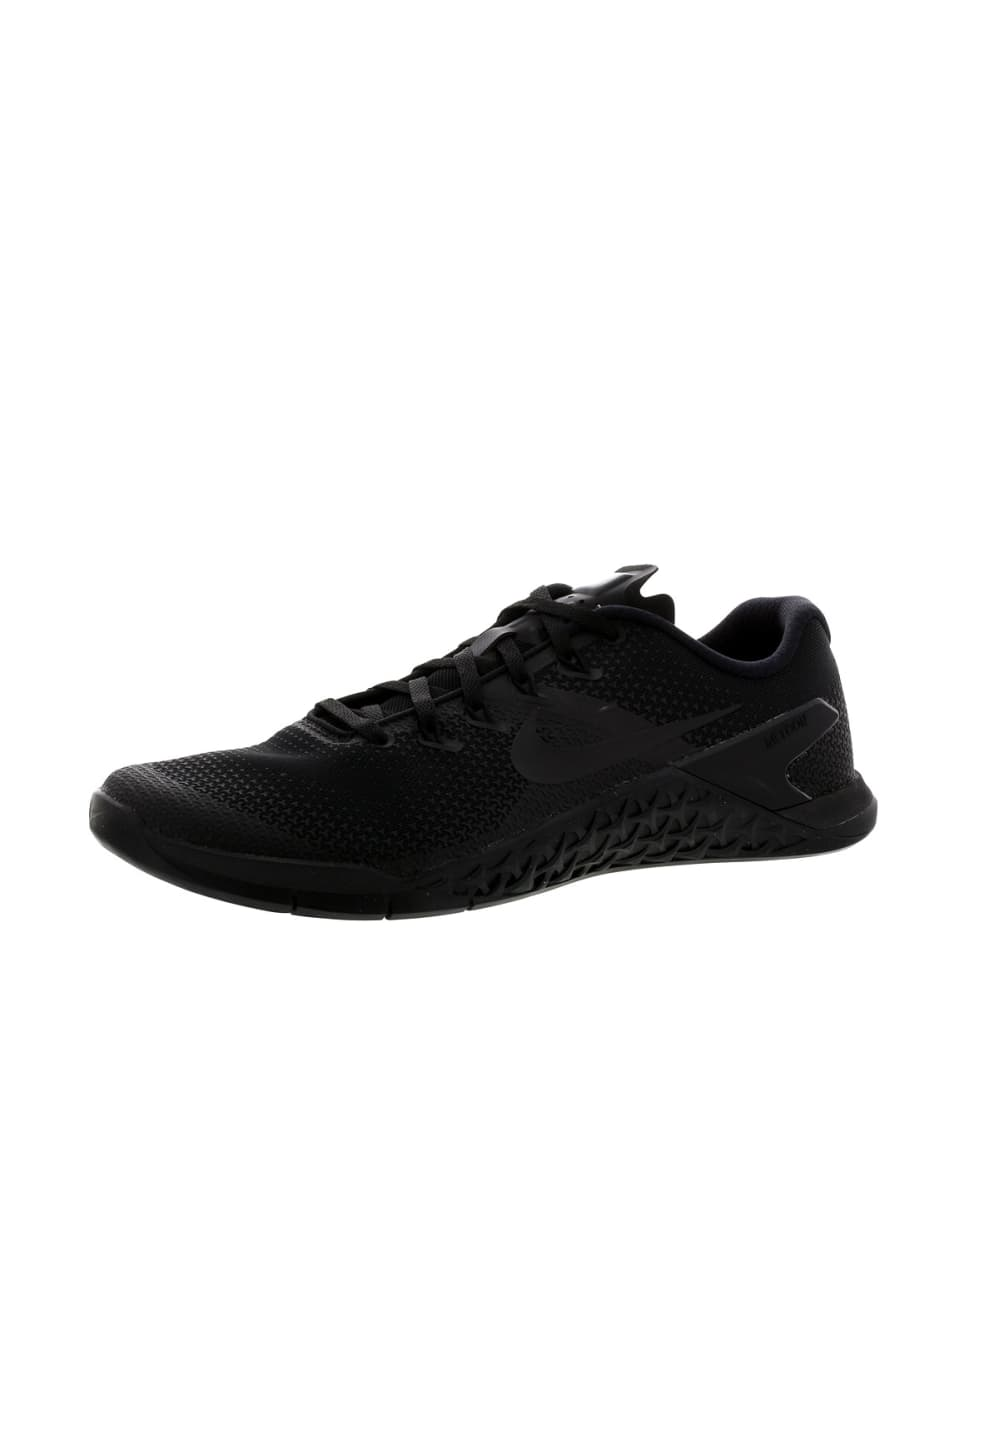 detailing ded80 0955f Nike Metcon 4 - Fitness shoes for Men - Black  21RUN